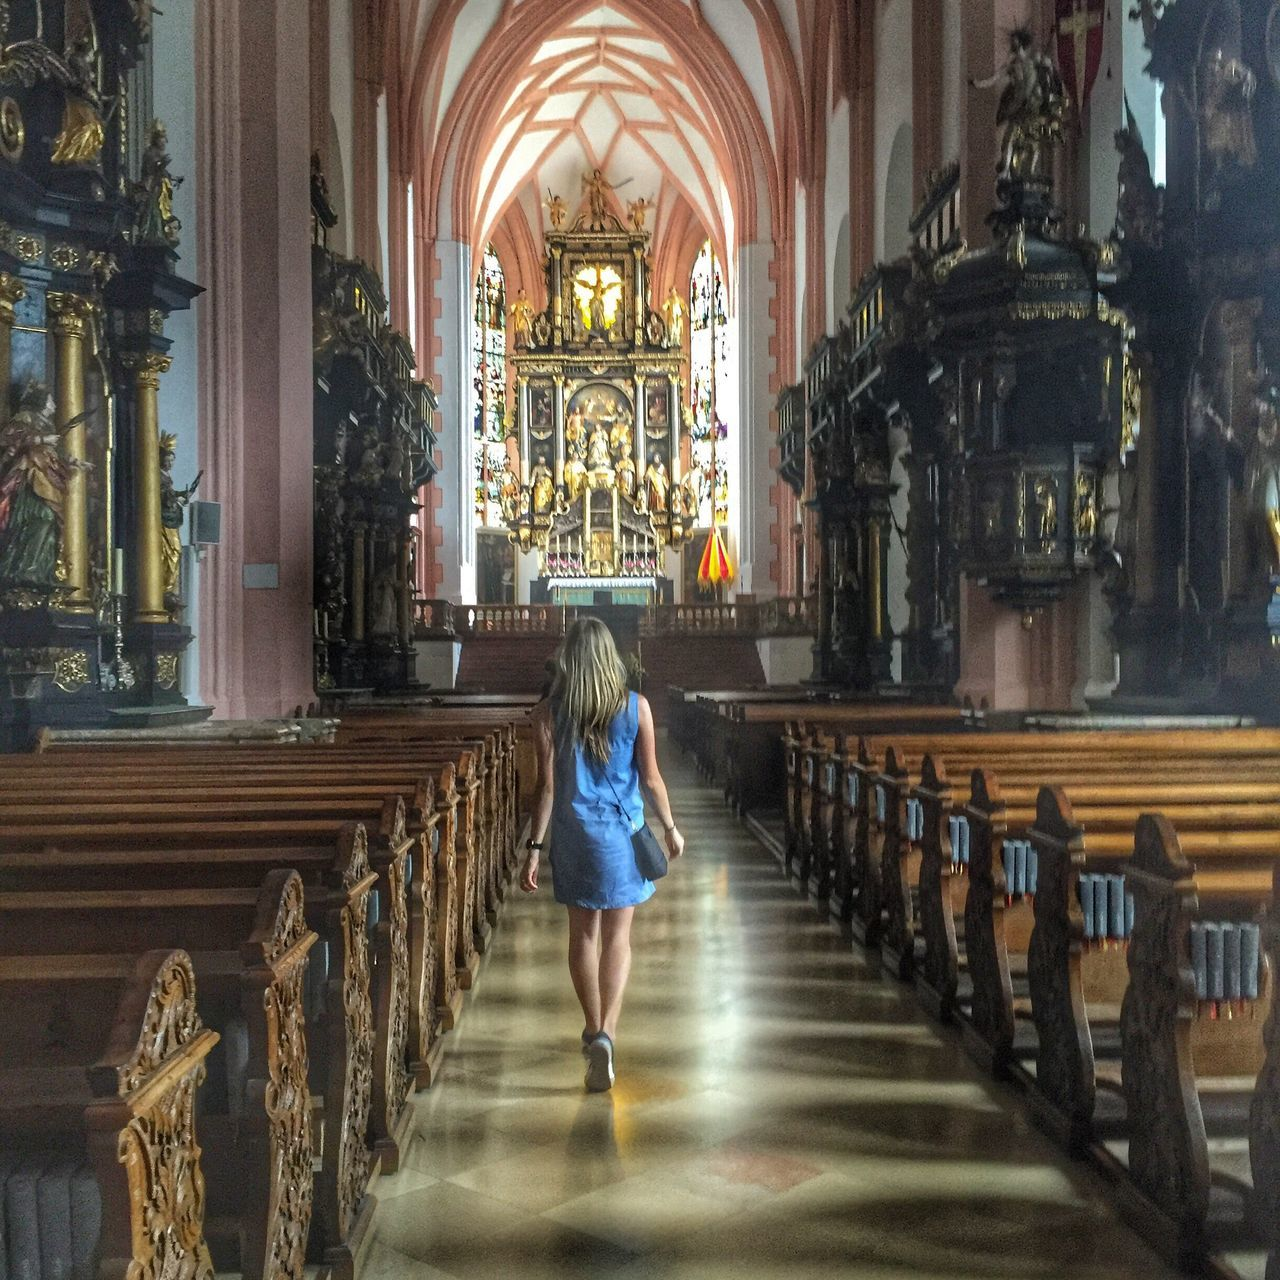 religion, spirituality, full length, place of worship, indoors, rear view, arch, pew, tourism, one person, architecture, architectural column, real people, day, women, people, adult, adults only